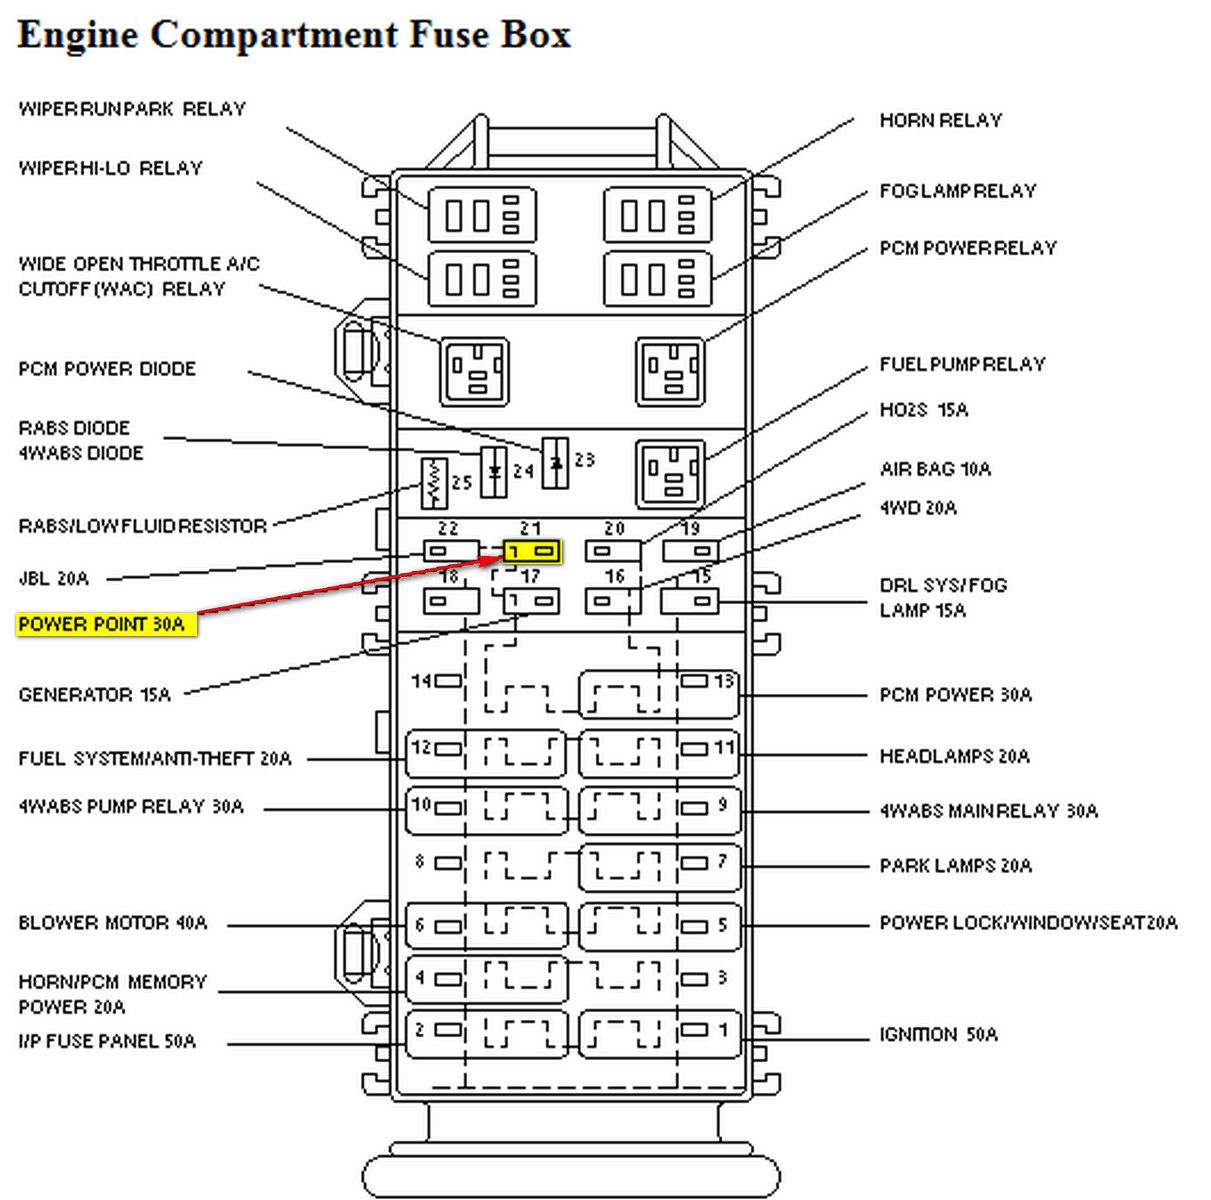 8a55967da7ae1bd251b795845886bd24 2002 ford ranger fuse diagram 1997 ford ranger fuse box diagram 1998 ford ranger fuse box diagram at mifinder.co